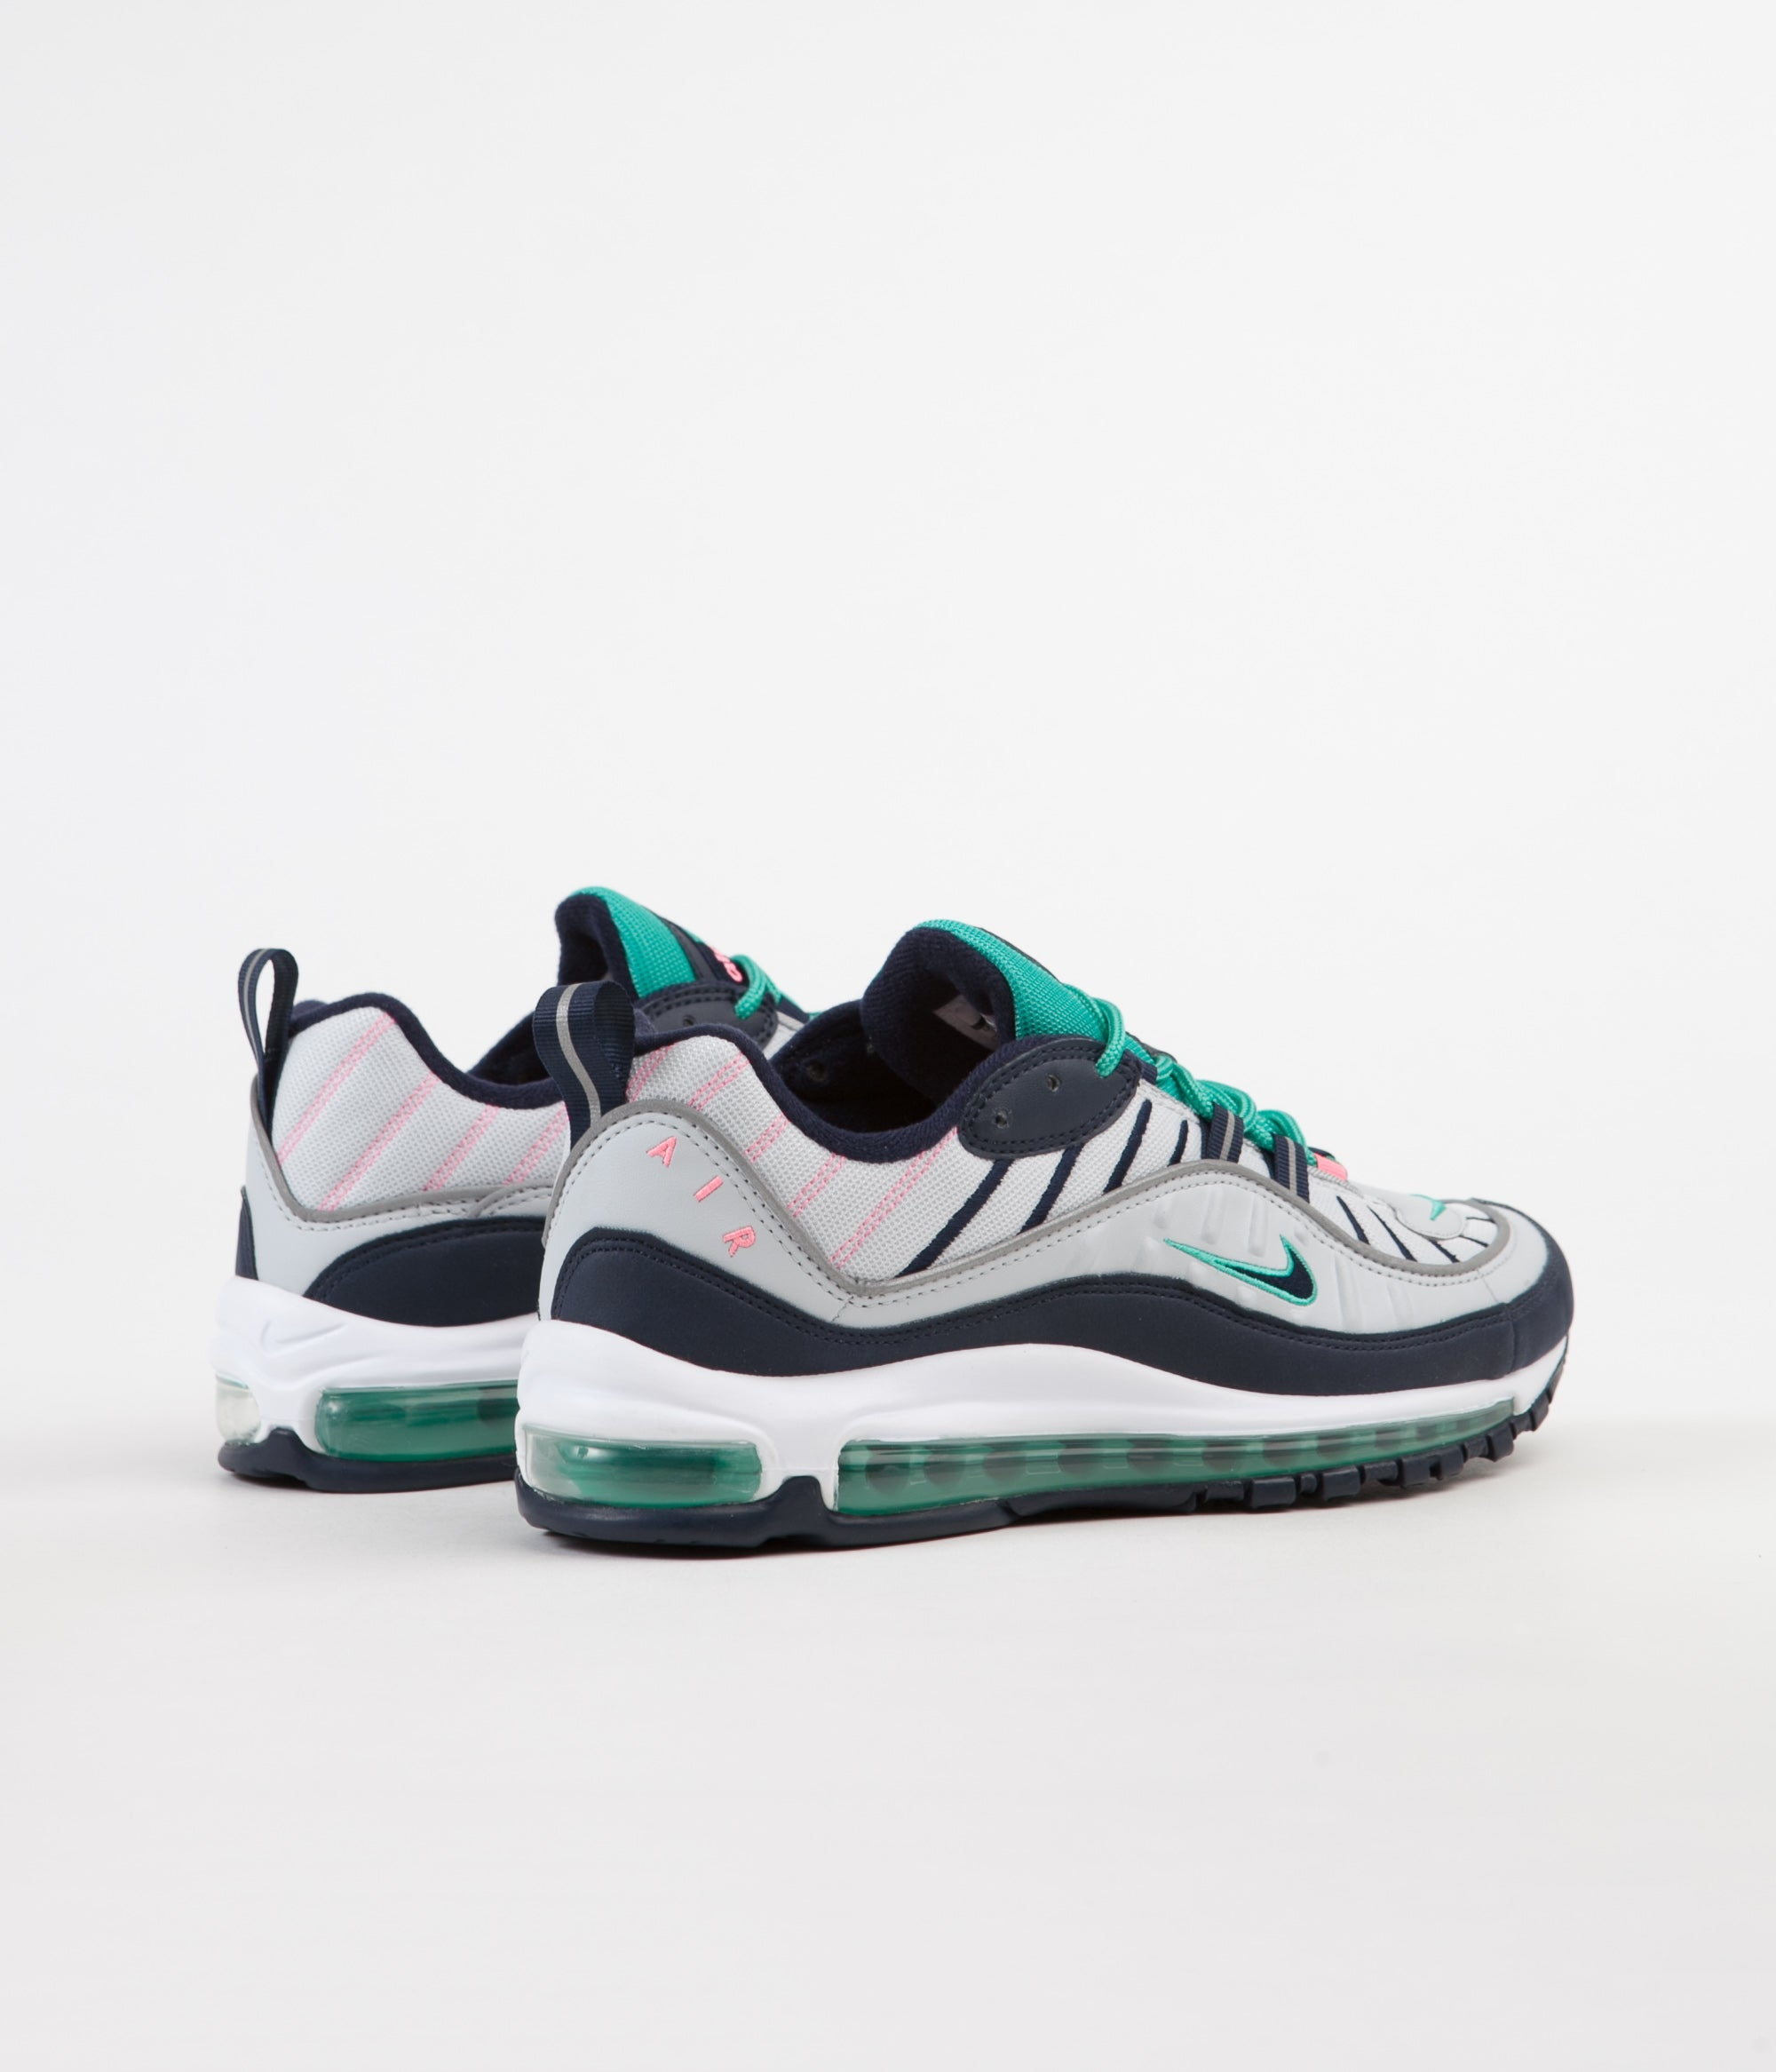 new concept b6cab 7e86a Nike Air Max 98 Shoes - Pure Platinum / Obsidian - Kinetic ...